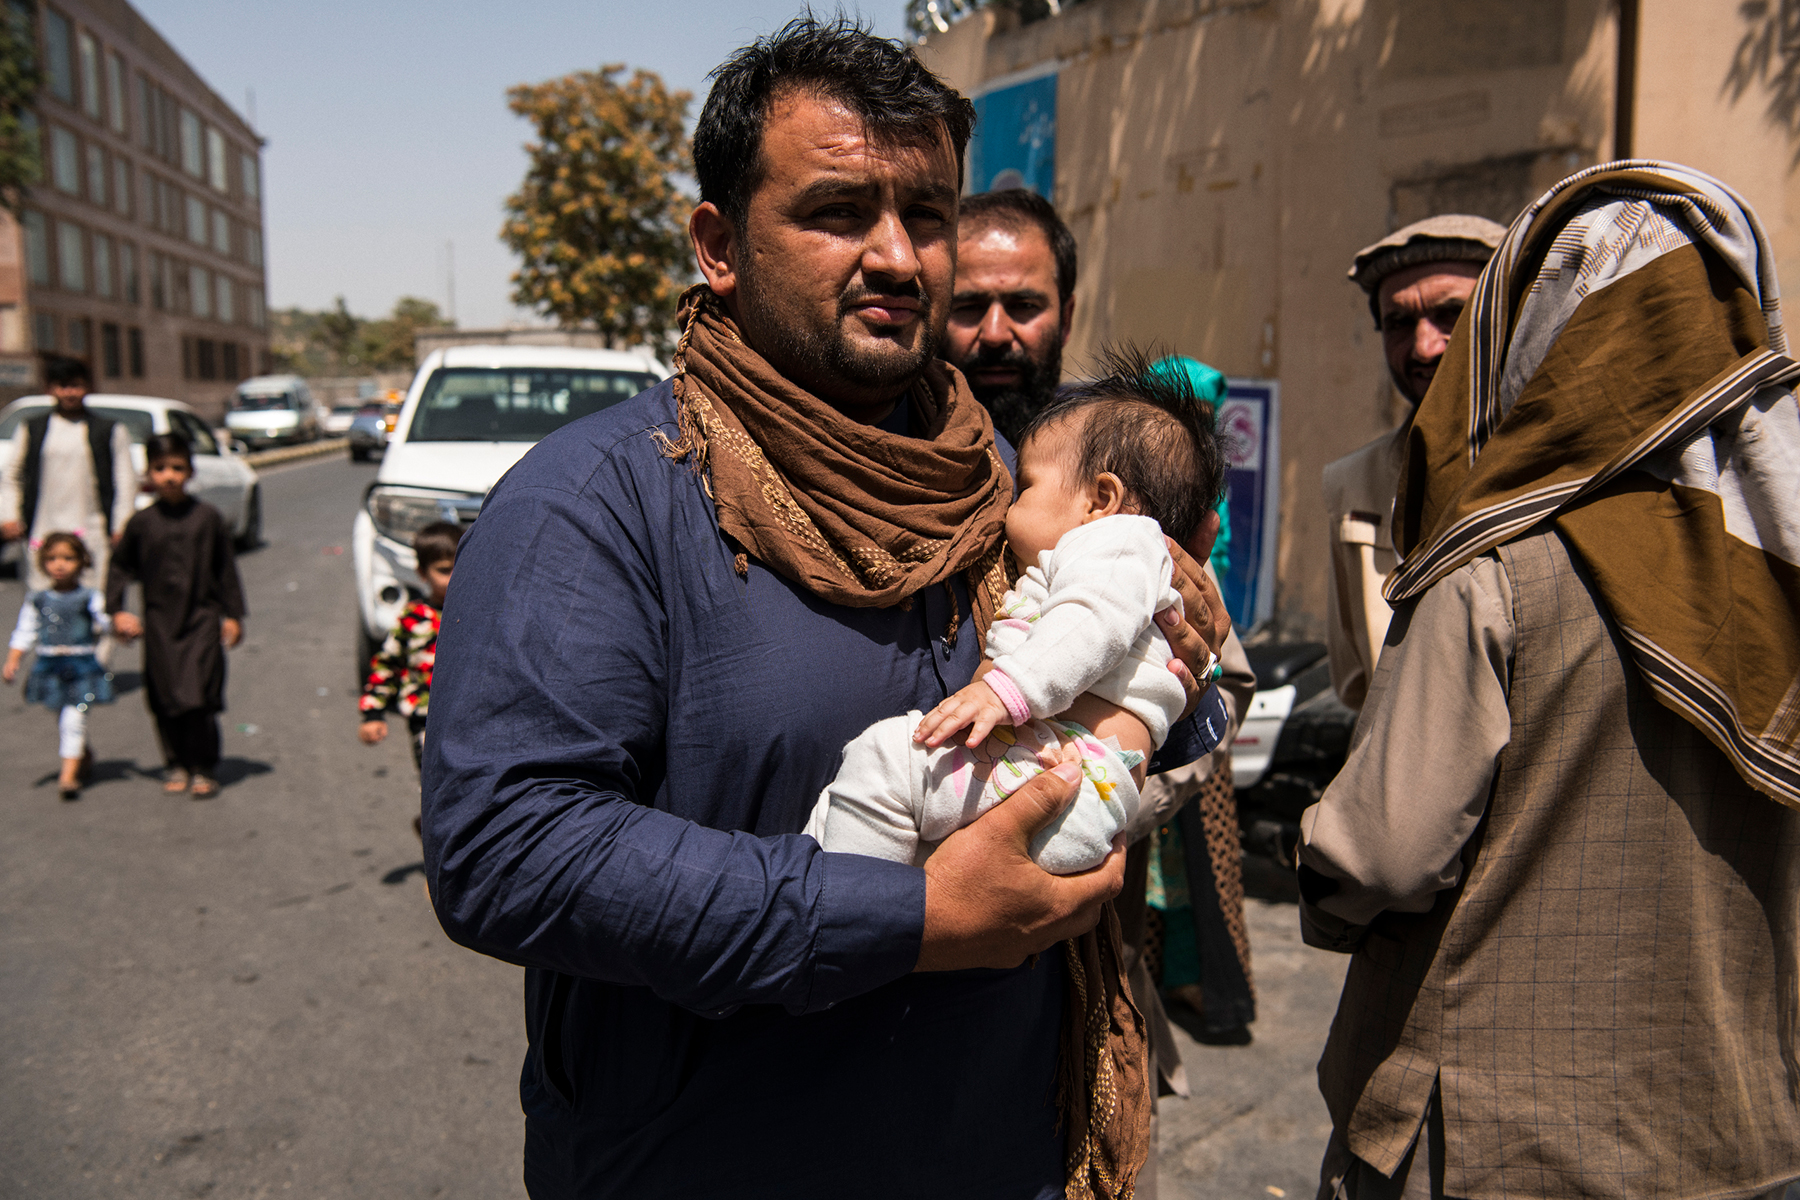 Agence France Presse Photographer Noorullah Shirzada carries his infant child inside Kabul's green zone in order to be transported to the international airport for evacuation flights. Yesterday, an agreement was reached by the Taliban leadership and the Afghan Government which saw President Ashraf Ghani step down in a transfer of power that saw barely any blood shed in the takeover of the capital. The takeover of the country transpired rapidly after U.S. and international forces began their final military from Afghanistan on May 1 this year. Since then, the Taliban swarmed across the countryside and then, ultimately, in early August, began overrunning provincial capitals, taking all 34 in a period of ten days, including Kabul, which they had surrounded by early this morning. The Taliban leadership instructed their fighters not to enter the city, though some appeared not to have received that order, parading through the streets on motorcycles and in Toyota Corollas. Government security forces were also asked to maintain security in the capital until further arrangements were made. By the afternoon most members of the government's security forces had shed their uniforms and most had left their posts, leaving somewhat of a power vacuum.